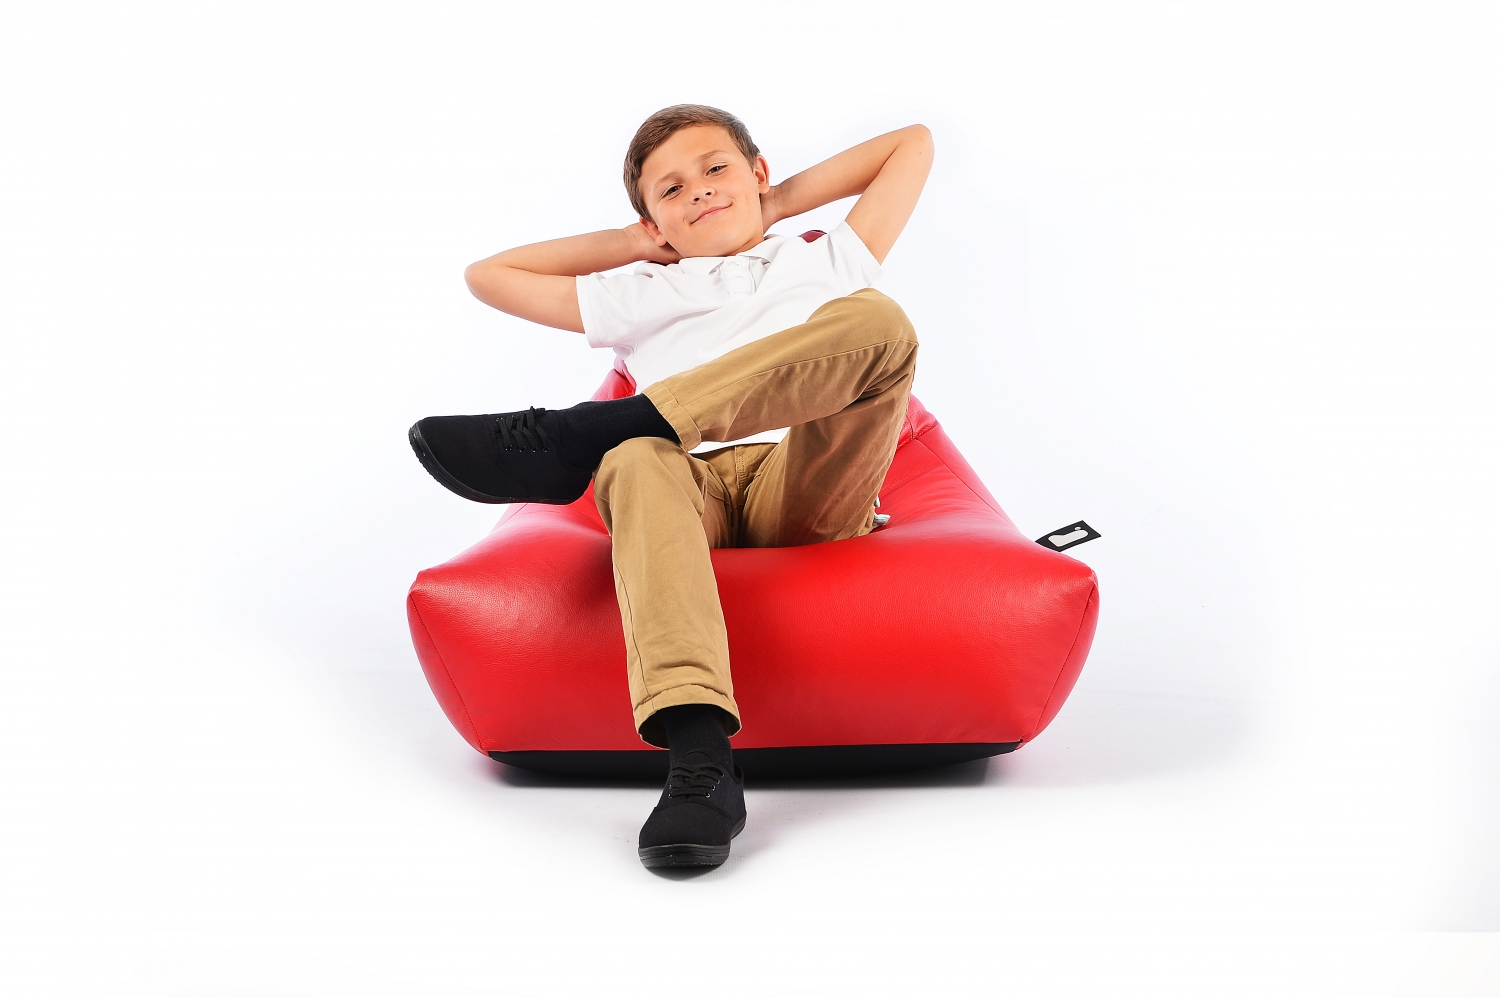 Extreme Lounging Mini Indoor Bean Bag For Kids Patio Life